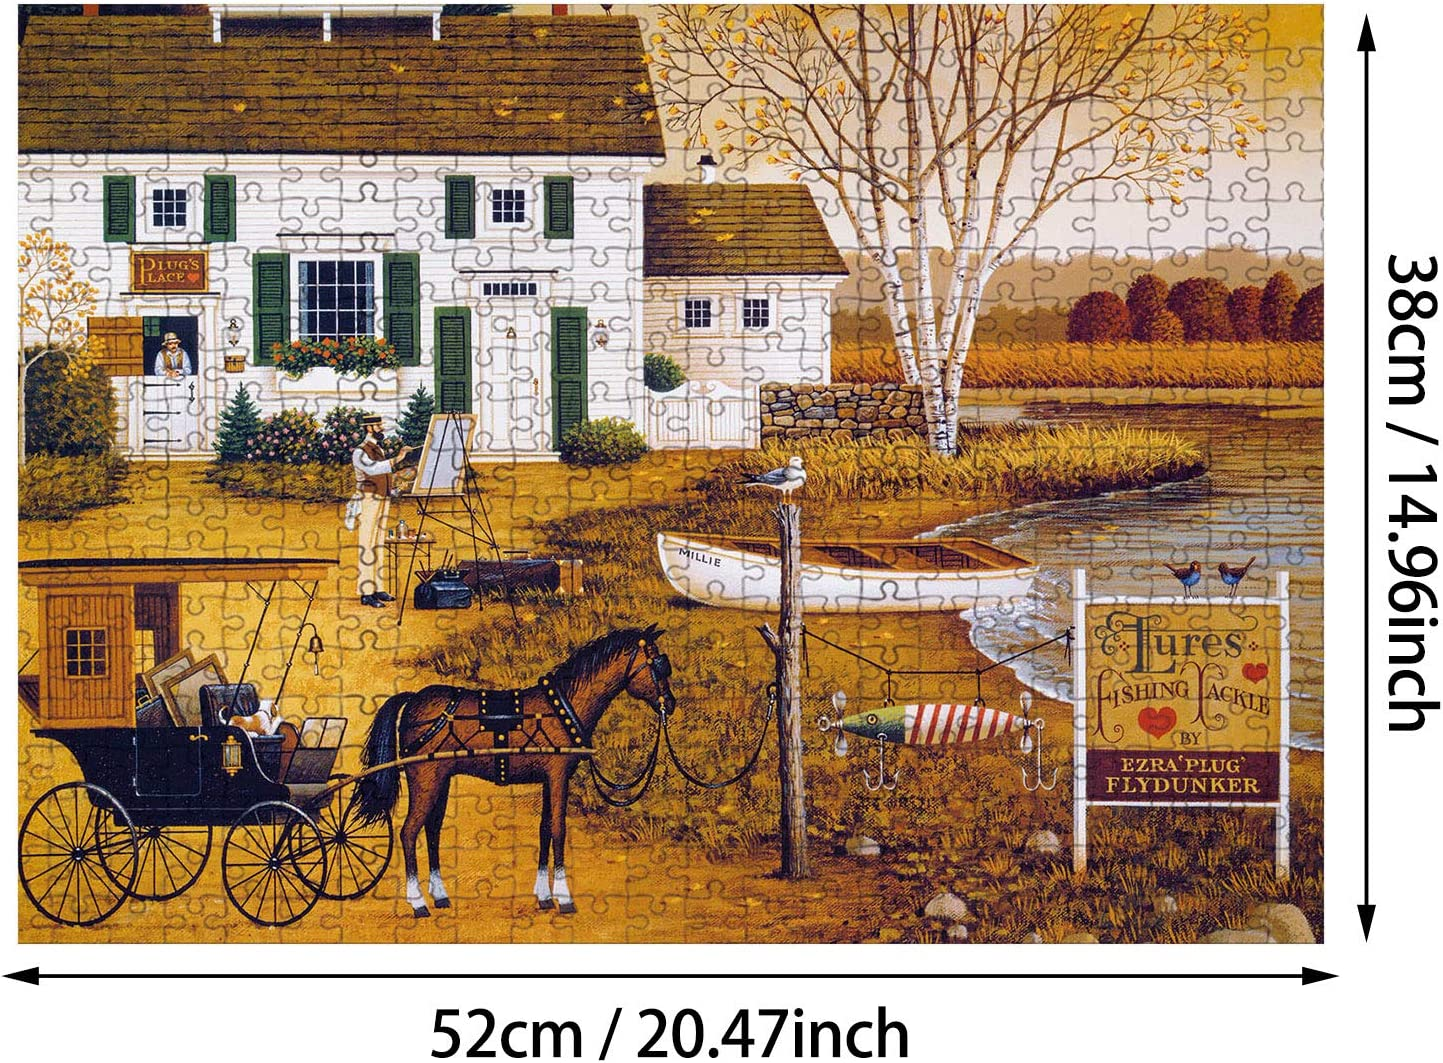 2 Sets 500 Pieces Jigsaw Puzzles Intellectual Landscape Puzzles Educational Jigsaws Beauty and Warm Gift Puzzles for Adults Teens and Family Seniors